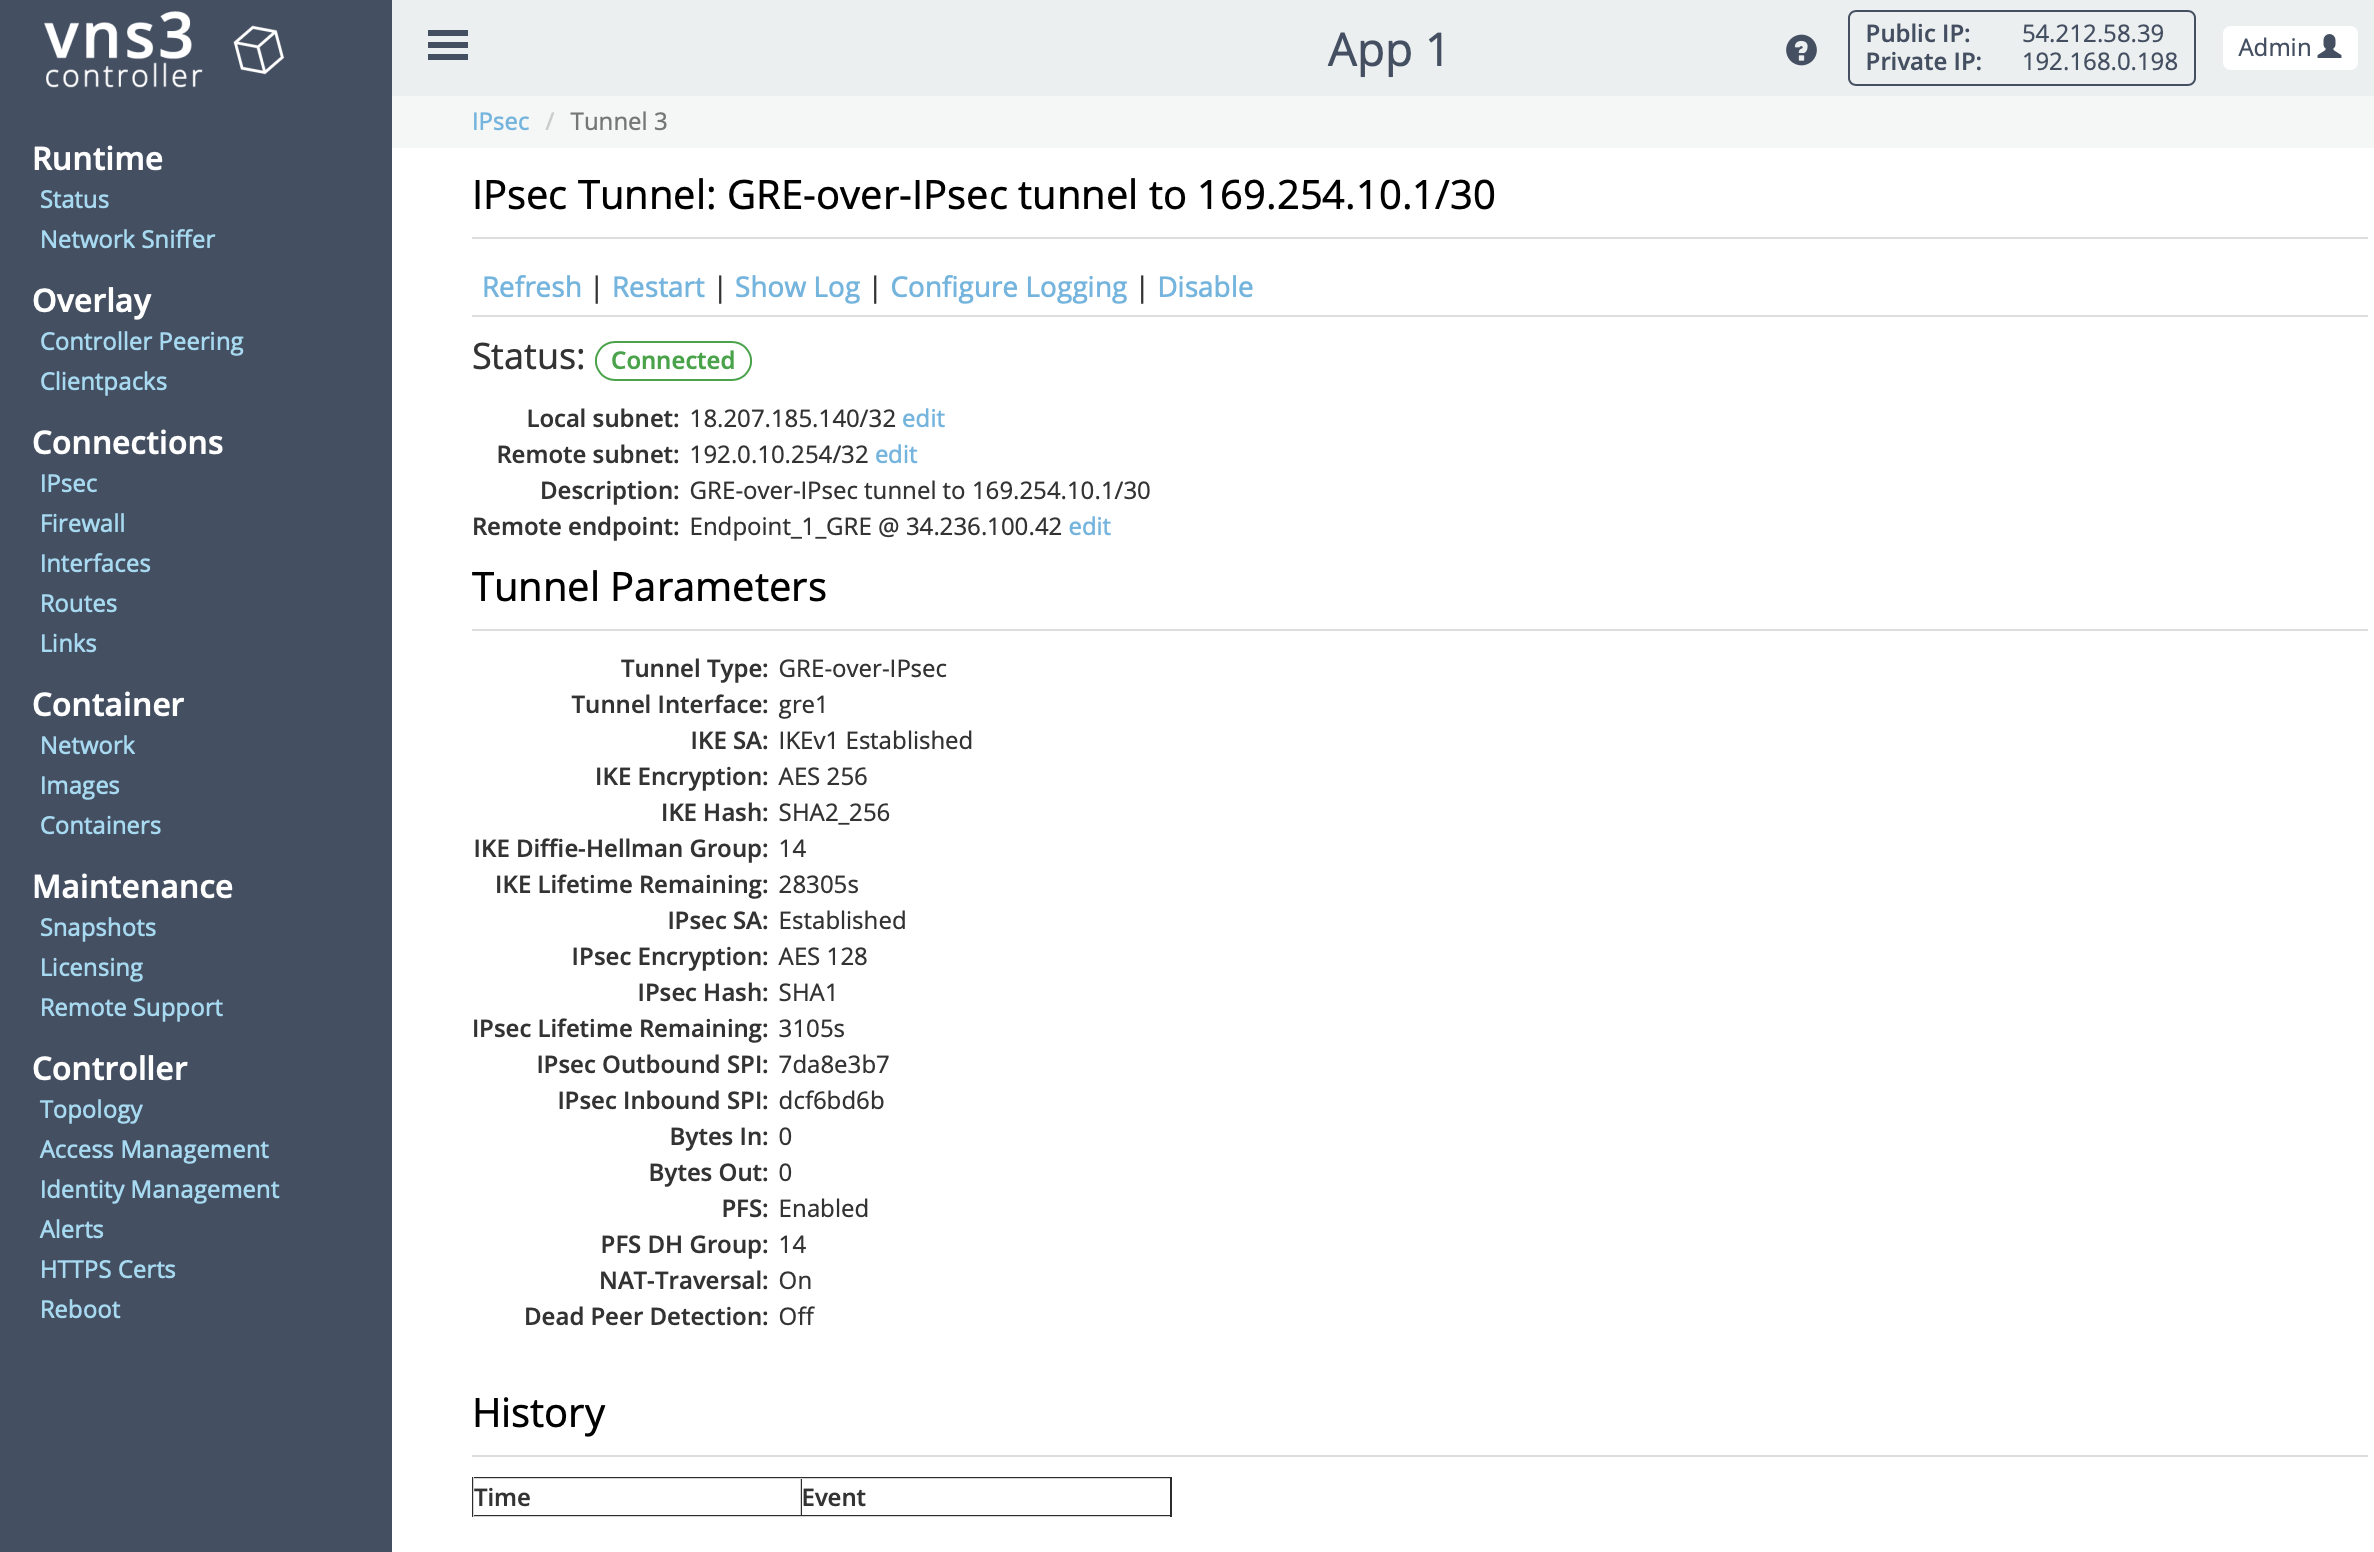 VNS3 Config IPSec GRE Tunnel Page